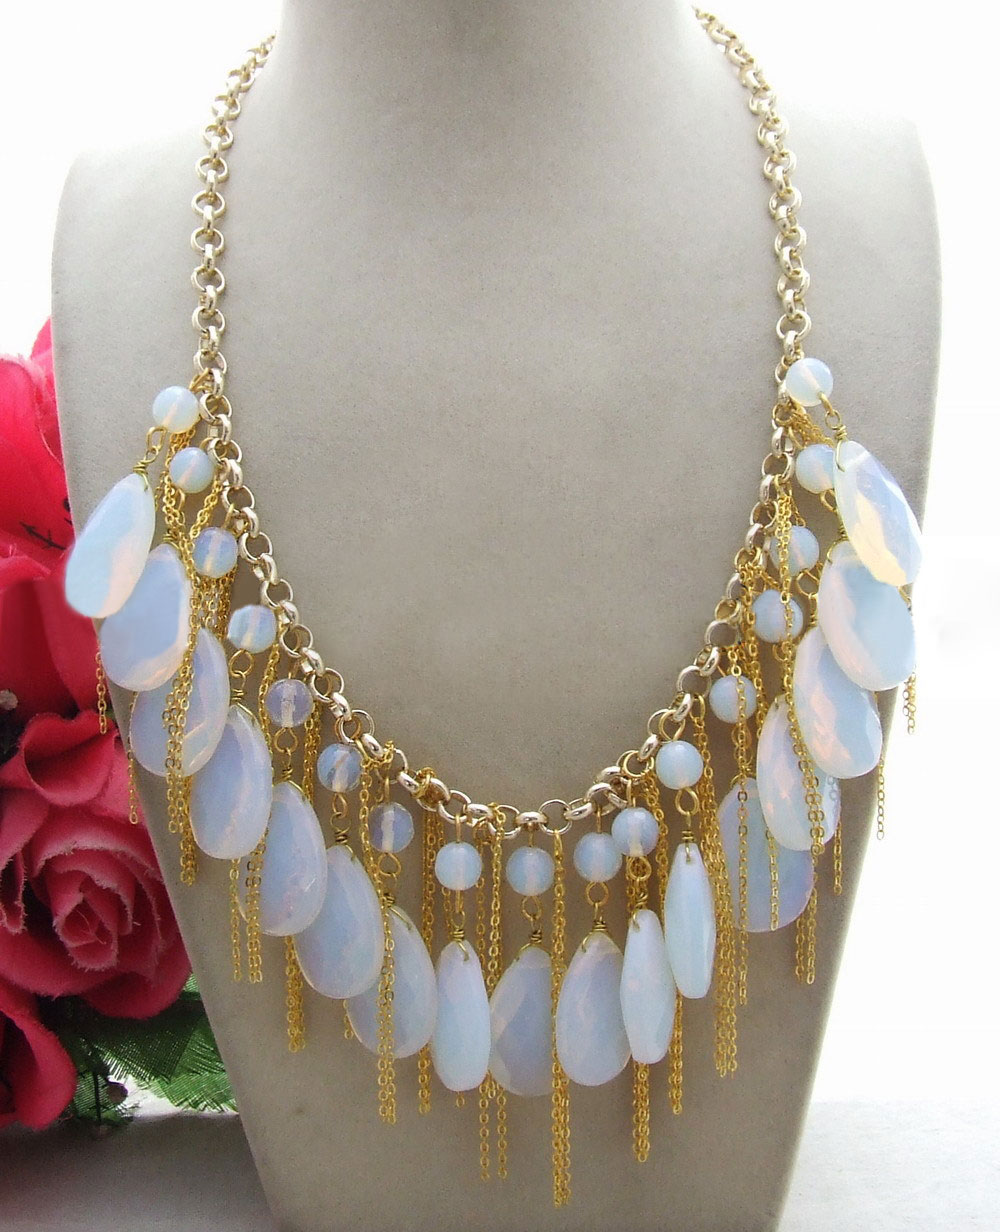 18 Golden Plated Chain Round Faceted Water Drop White Crystal Keshi Pearl Necklace